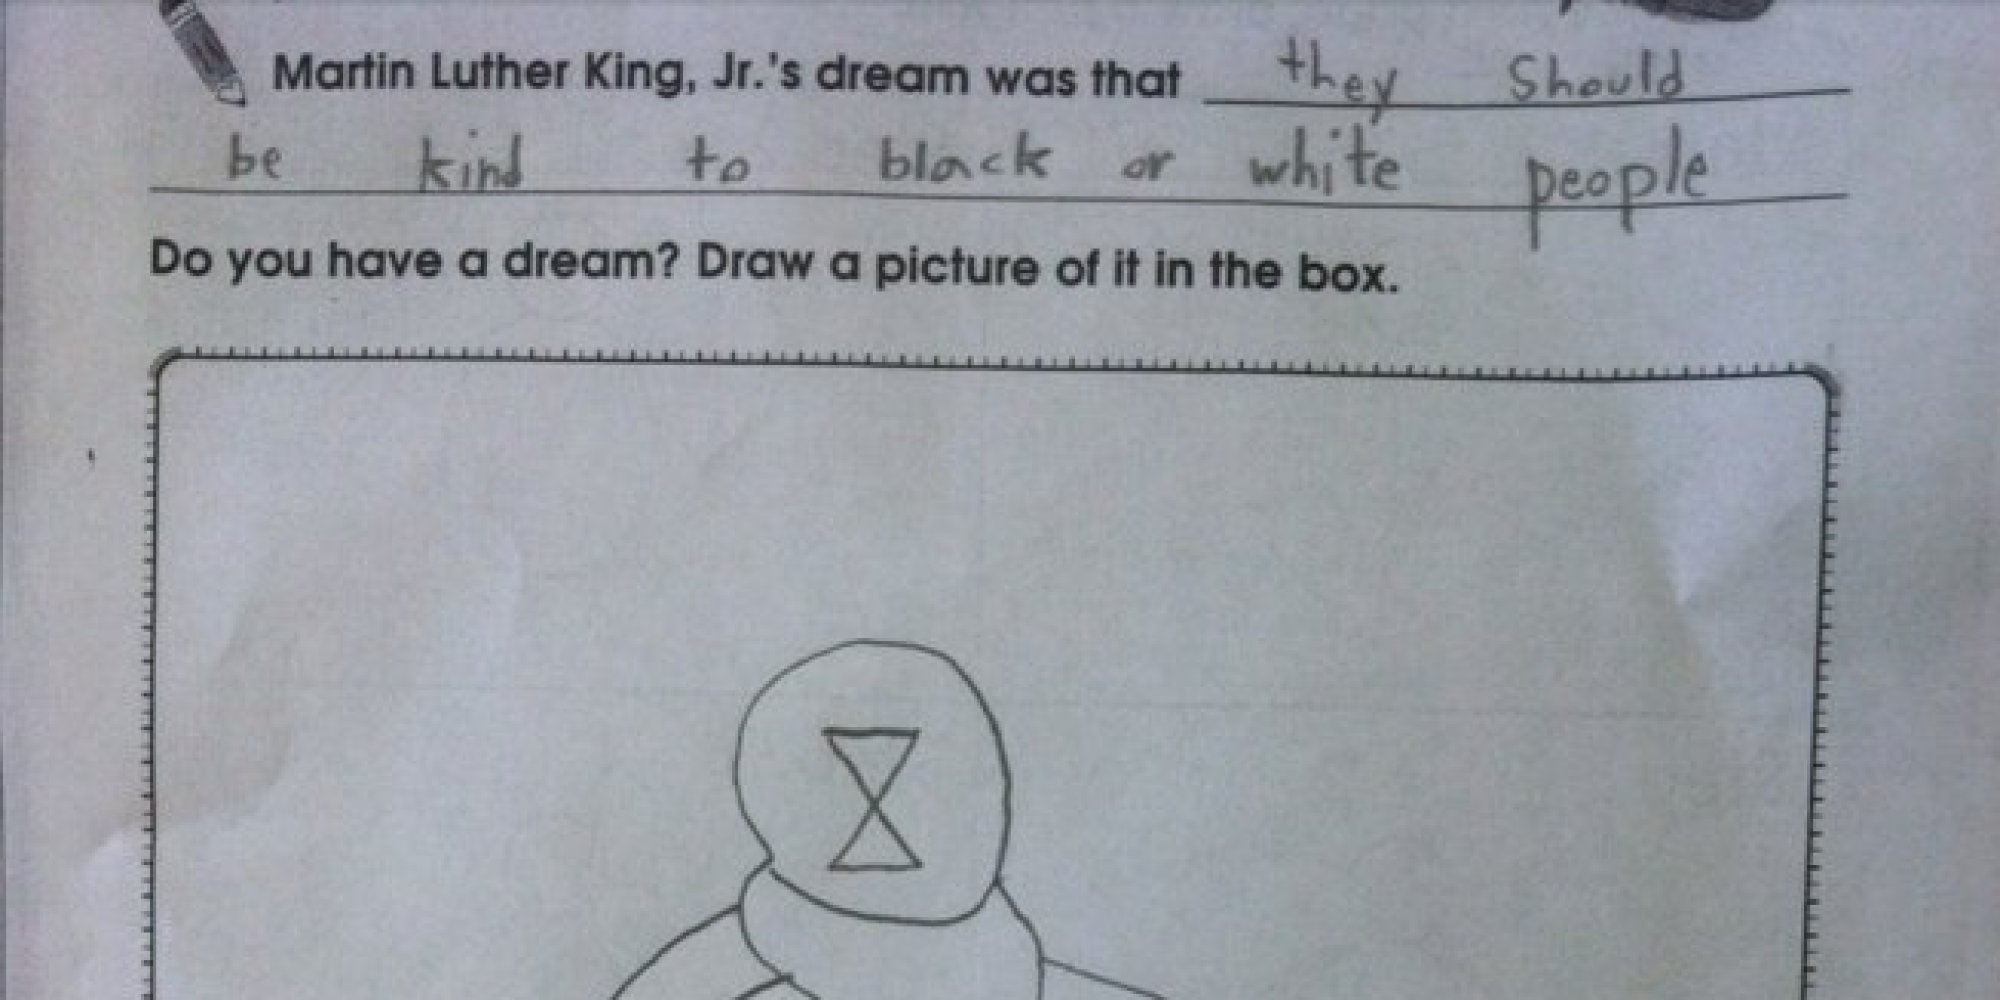 Child S Answer To Martin Luther King Dream School